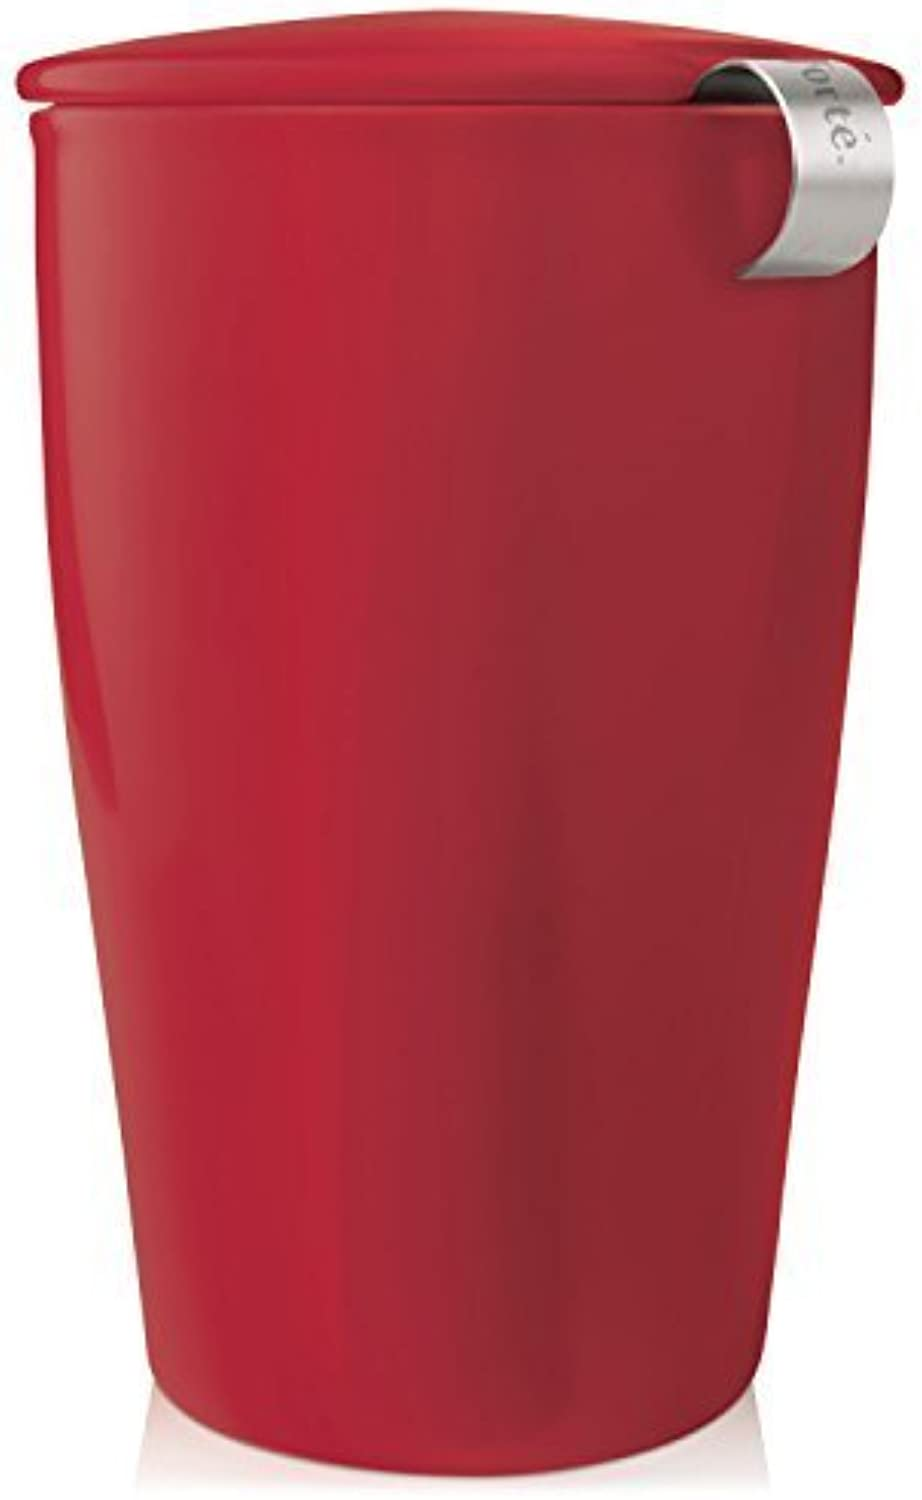 Tea Forte KATI Single Cup Loose Leaf Tea Brewing System, Insulated Ceramic Cup with Tea Infuser and Lid, Cranberry rouge - nouveau Infuser Design by Tea Forte